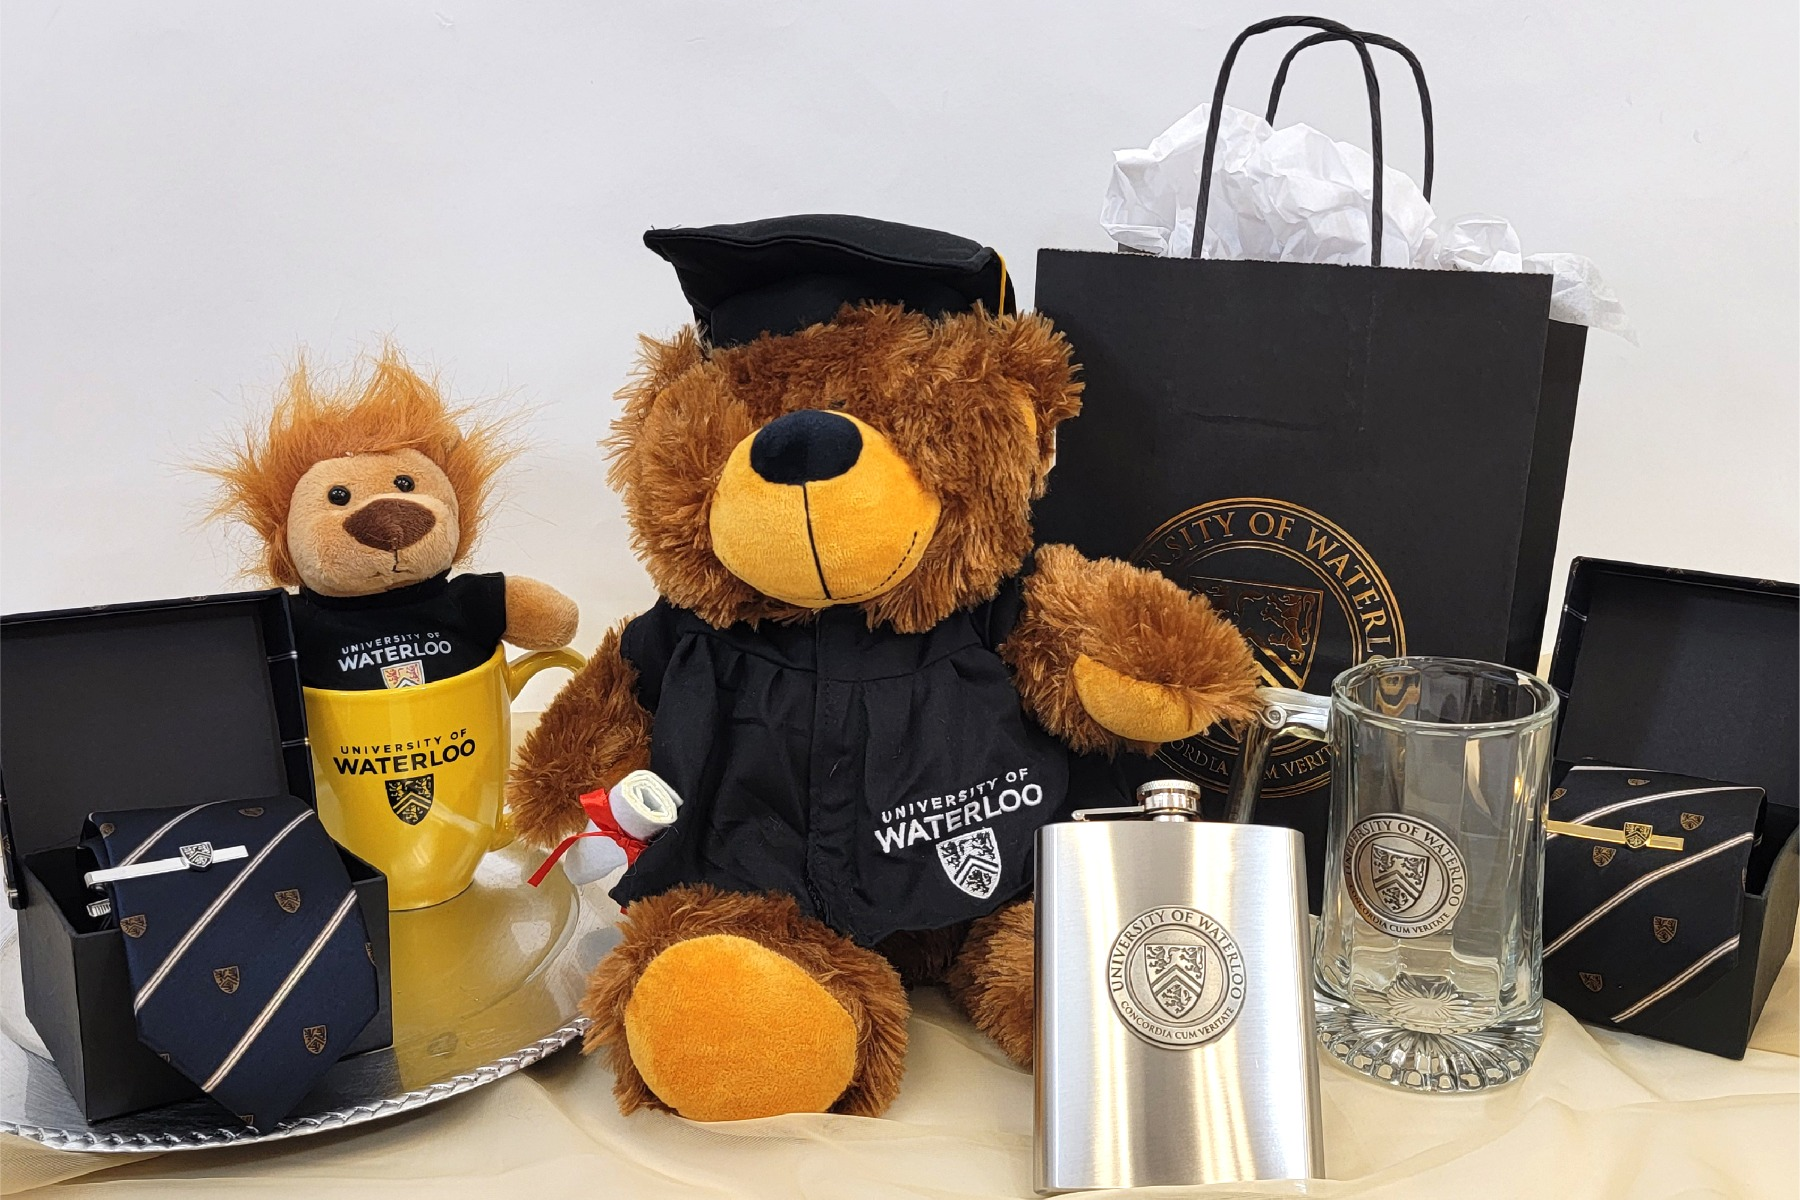 Cpnvocation bear and other grad gifts